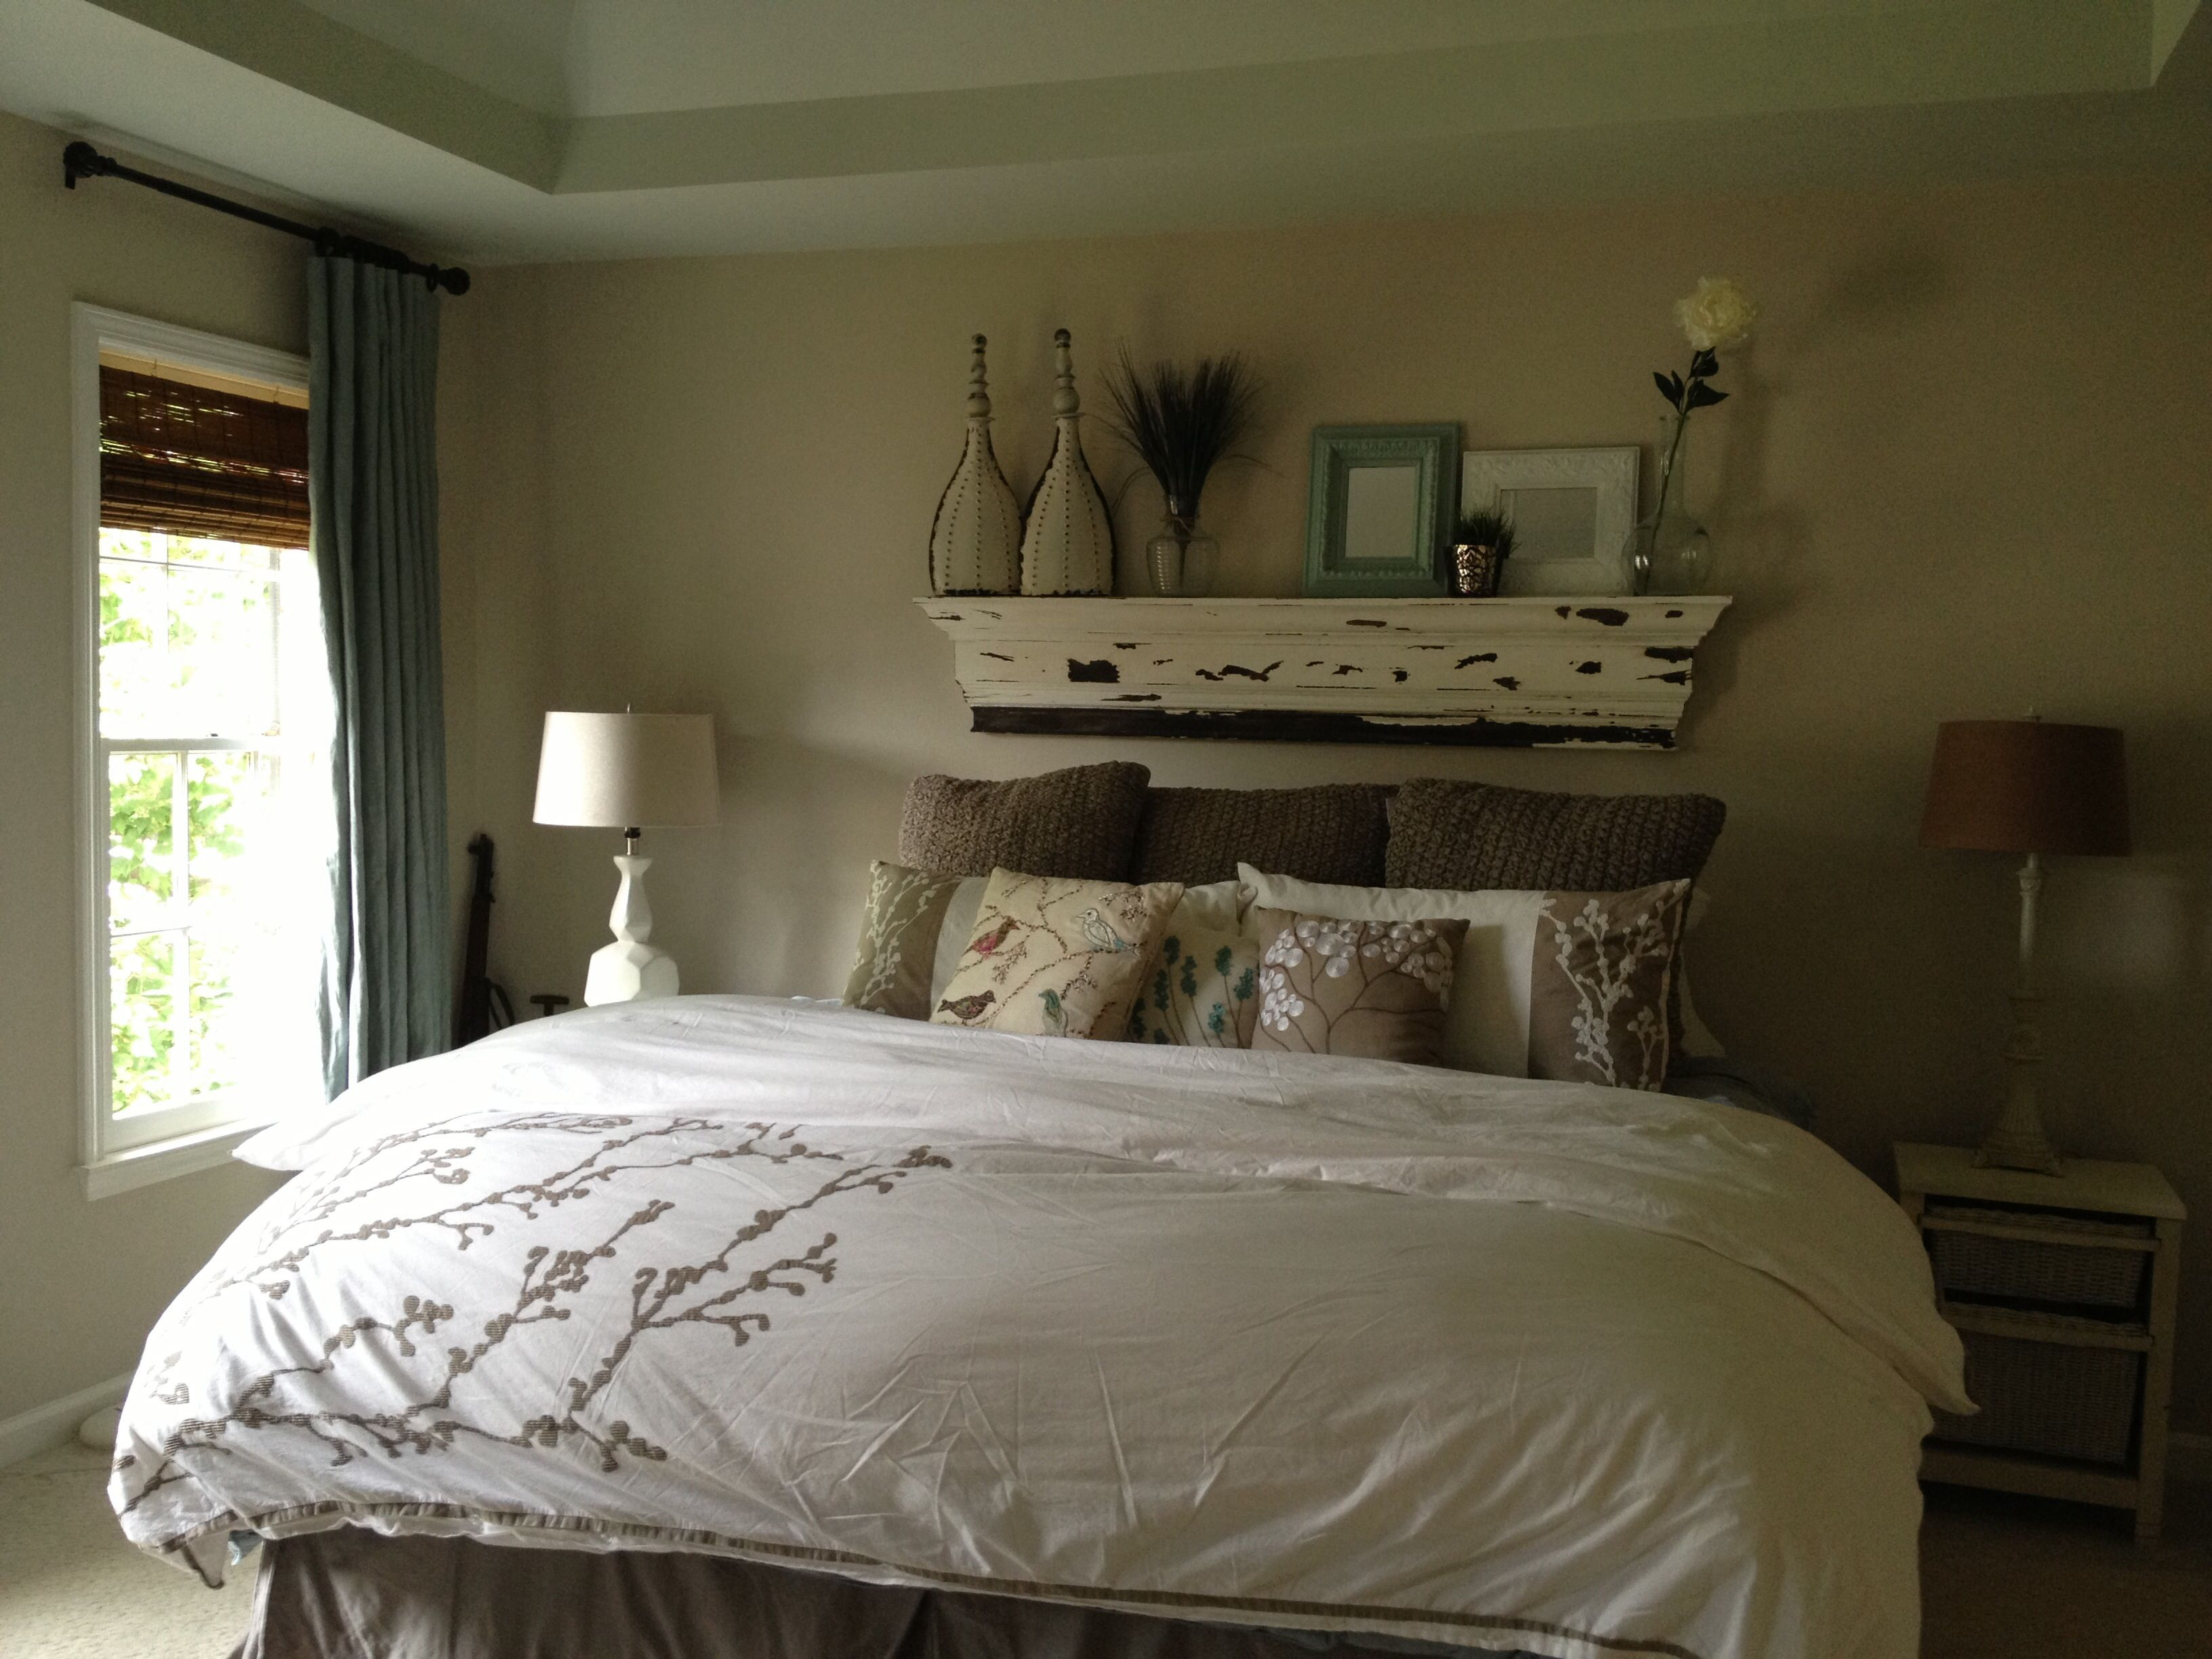 Uncategorized No Headboard master bedroom w no headboard or just a chunky shelf above bed & Uncategorized. No Headboard. christassam Home Design pillowsntoast.com